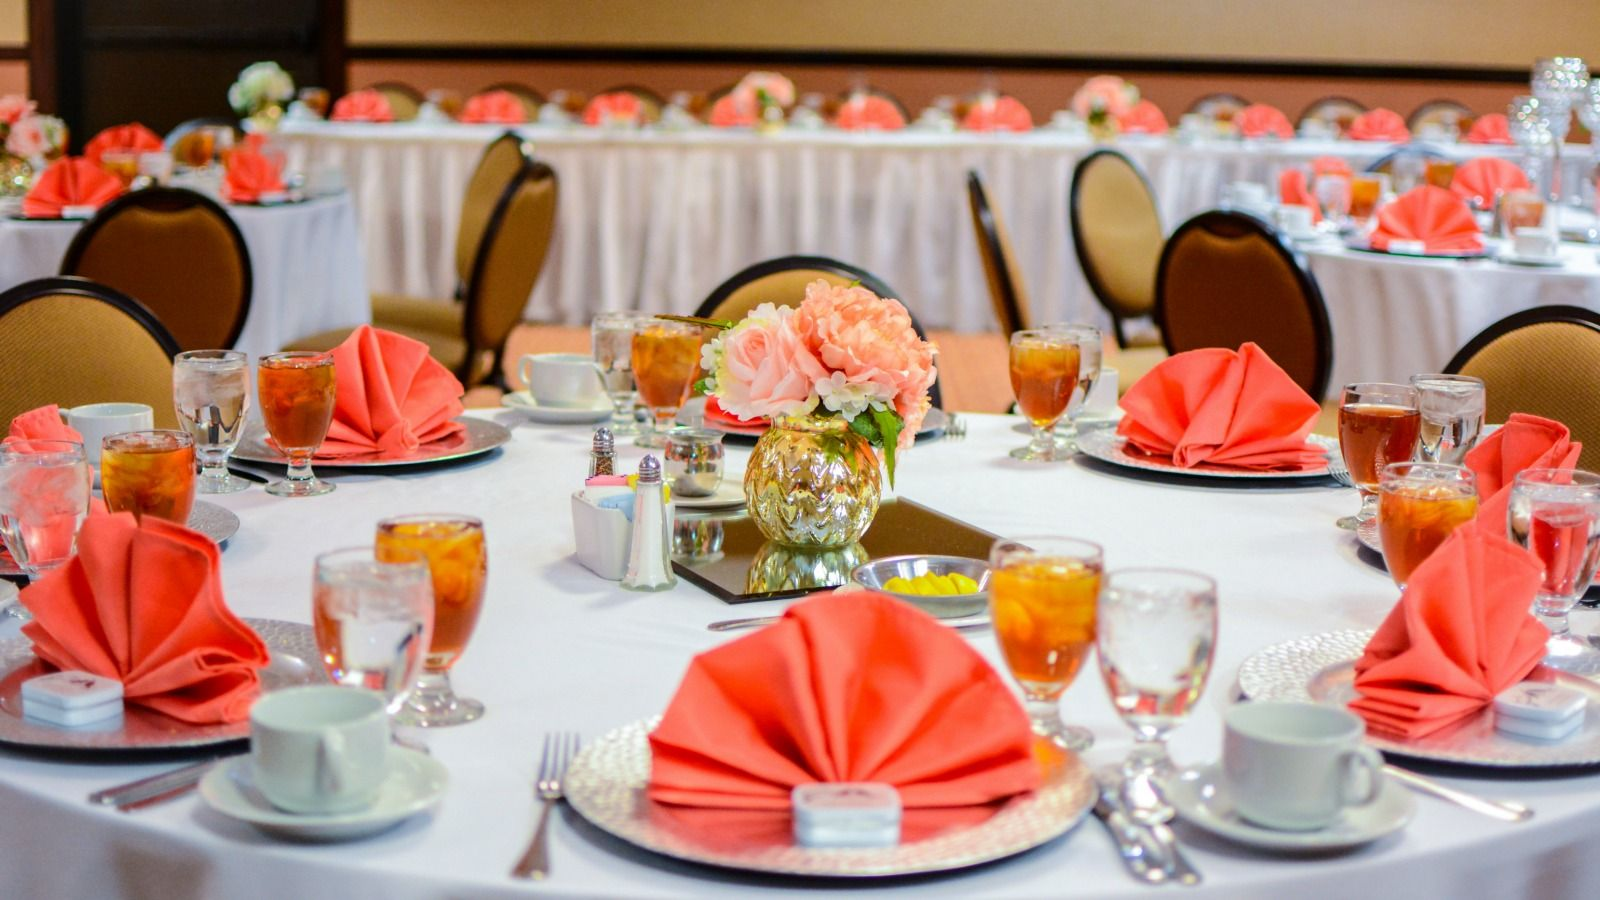 Wedding Venues in Tucson - Ballroom